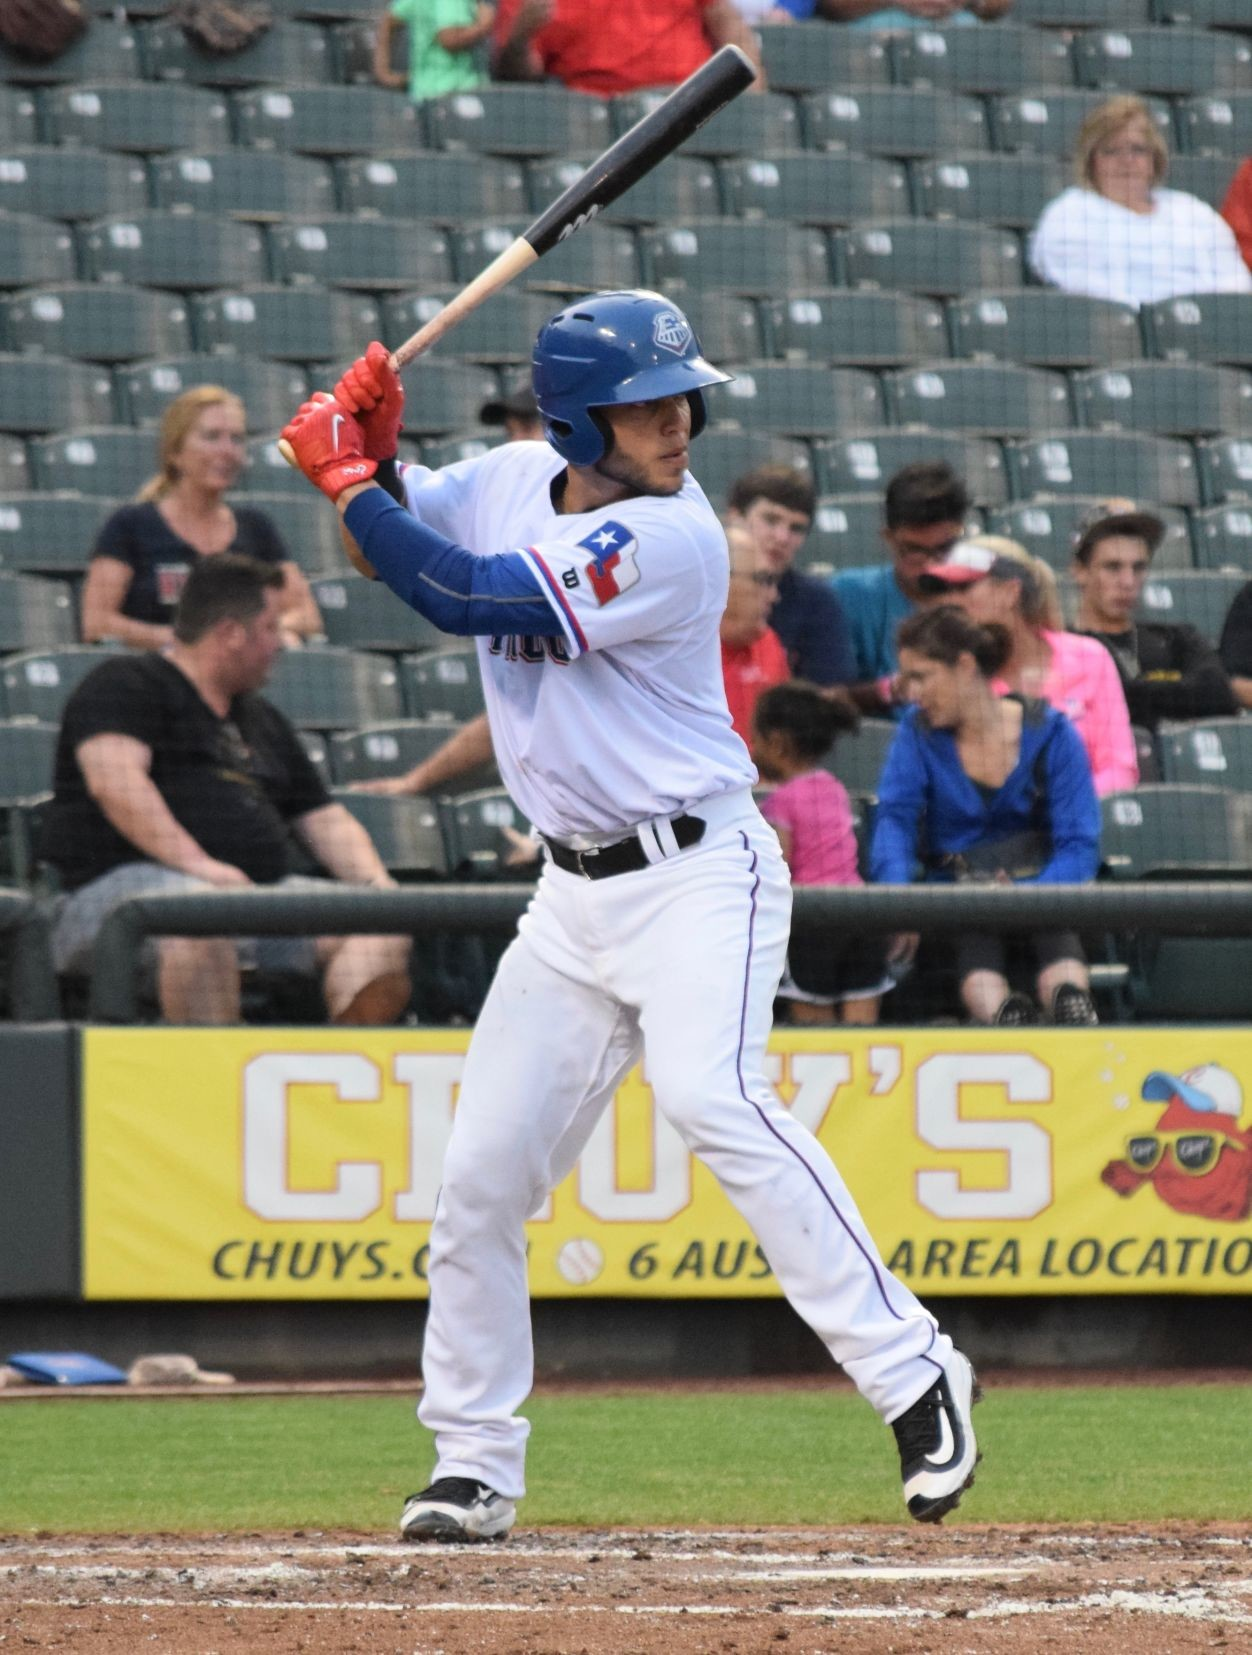 A.J. Jimenez hit his first home run of the season in Round Rock's 5-3 loss to New Orleans on Wednesday afternoon. The Express have homered in nine straight games and have 18 dingers in that span.